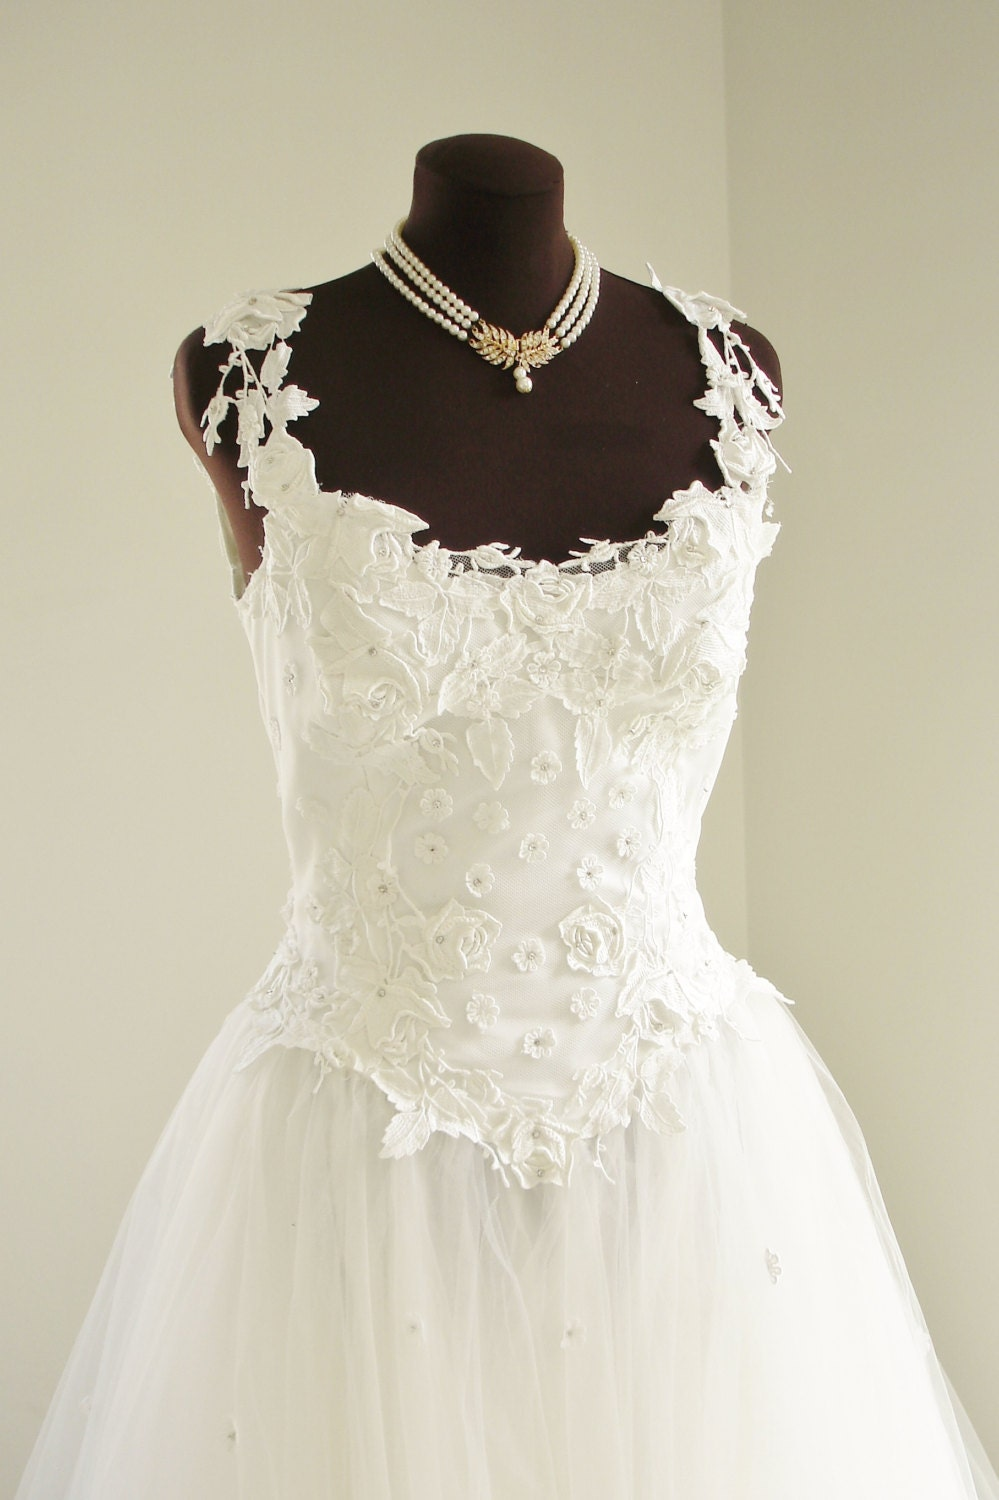 Vintage priscilla of boston wedding dress with full ball gown for Boston wedding dresses